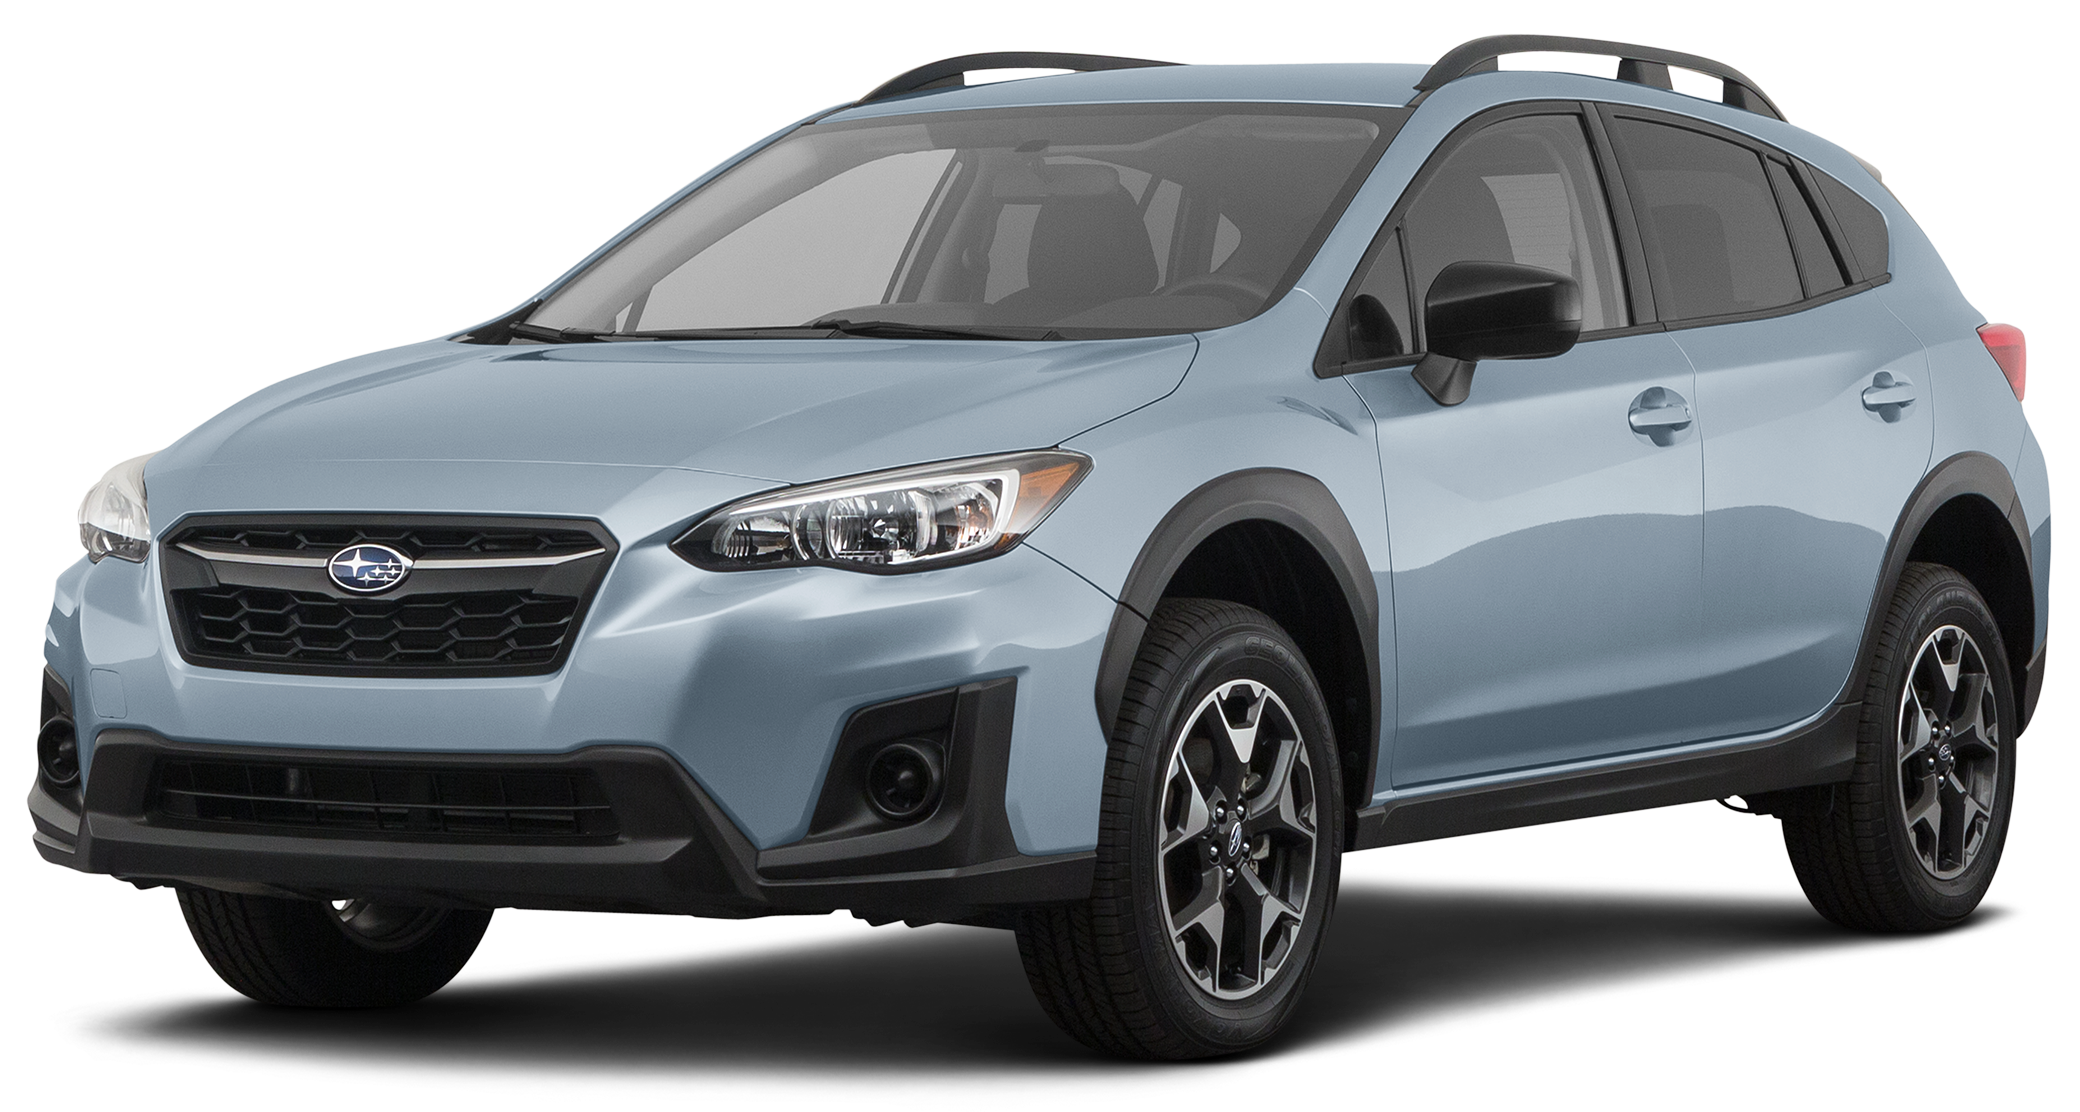 http://images.dealer.com/ddc/vehicles/2020/Subaru/Crosstrek/SUV/trim_Base_47c4d7/perspective/front-left/2020_76.png